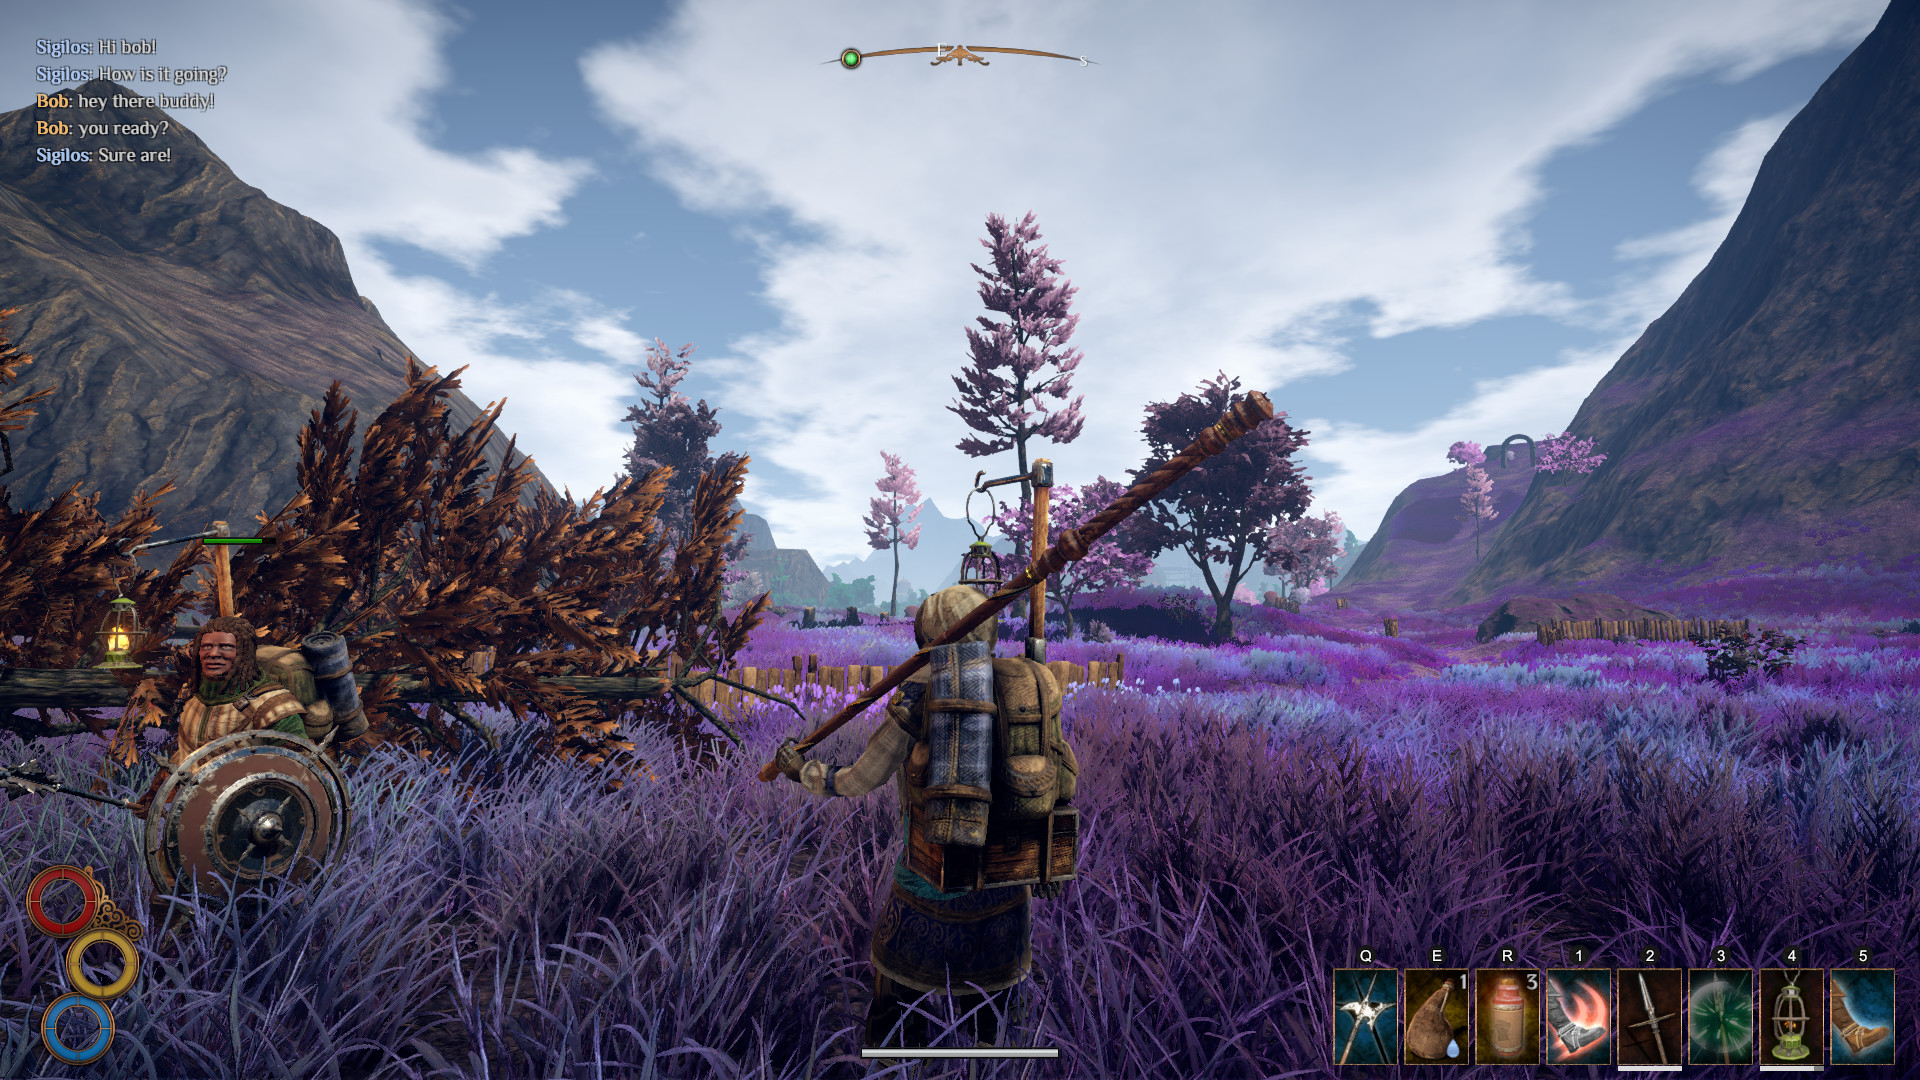 Screenshot for the game Outward [1.3.2 (44032)] (2019) download torrent RePack from R. G. Mechanics